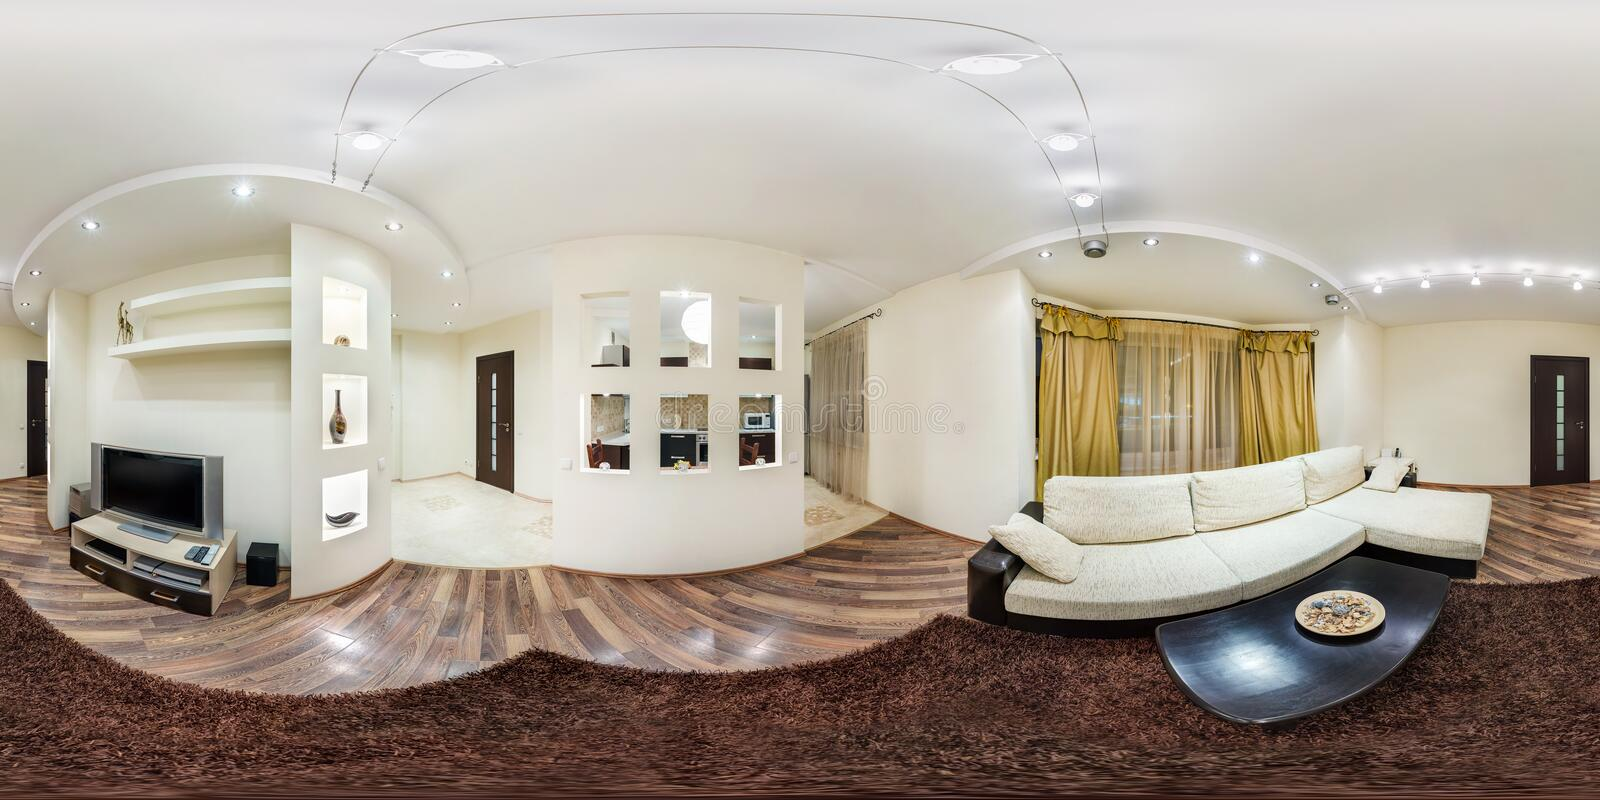 MINSK, BELARUS - FEBRUARY 2, 2013: Full spherical 360 by 180 degrees seamless panorama in equirectangular equidistant projection,. Panorama in interior stock photos